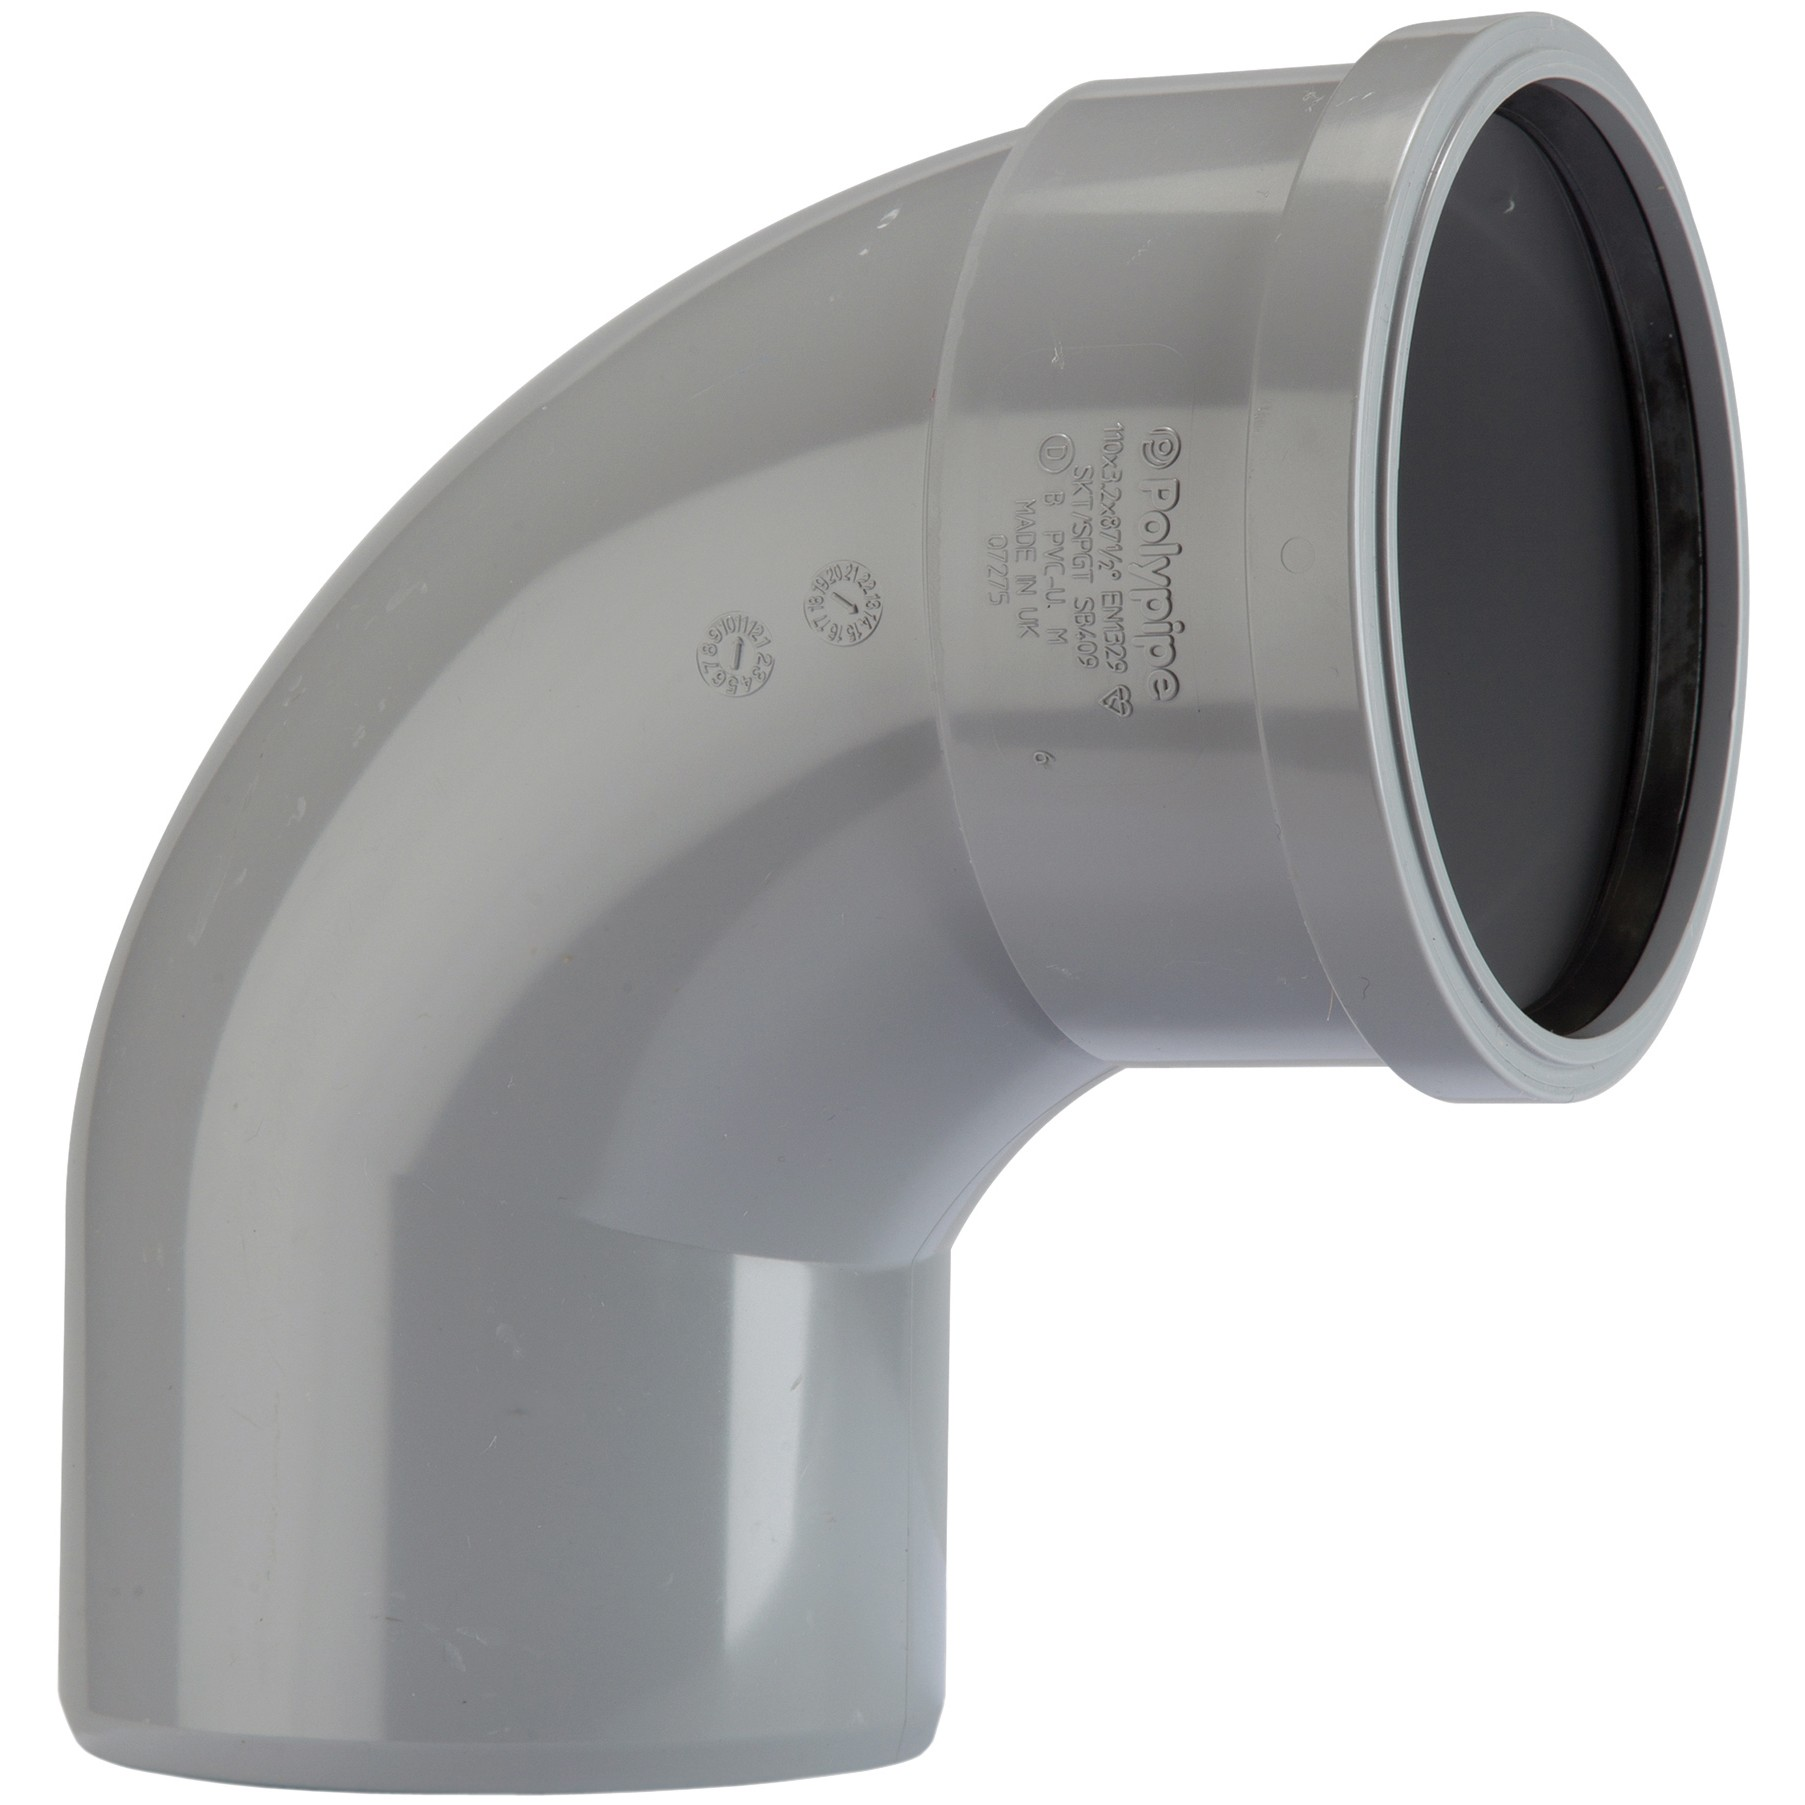 Polypipe 82mm Soil Single Socket 92.5 Degree Bend - Grey